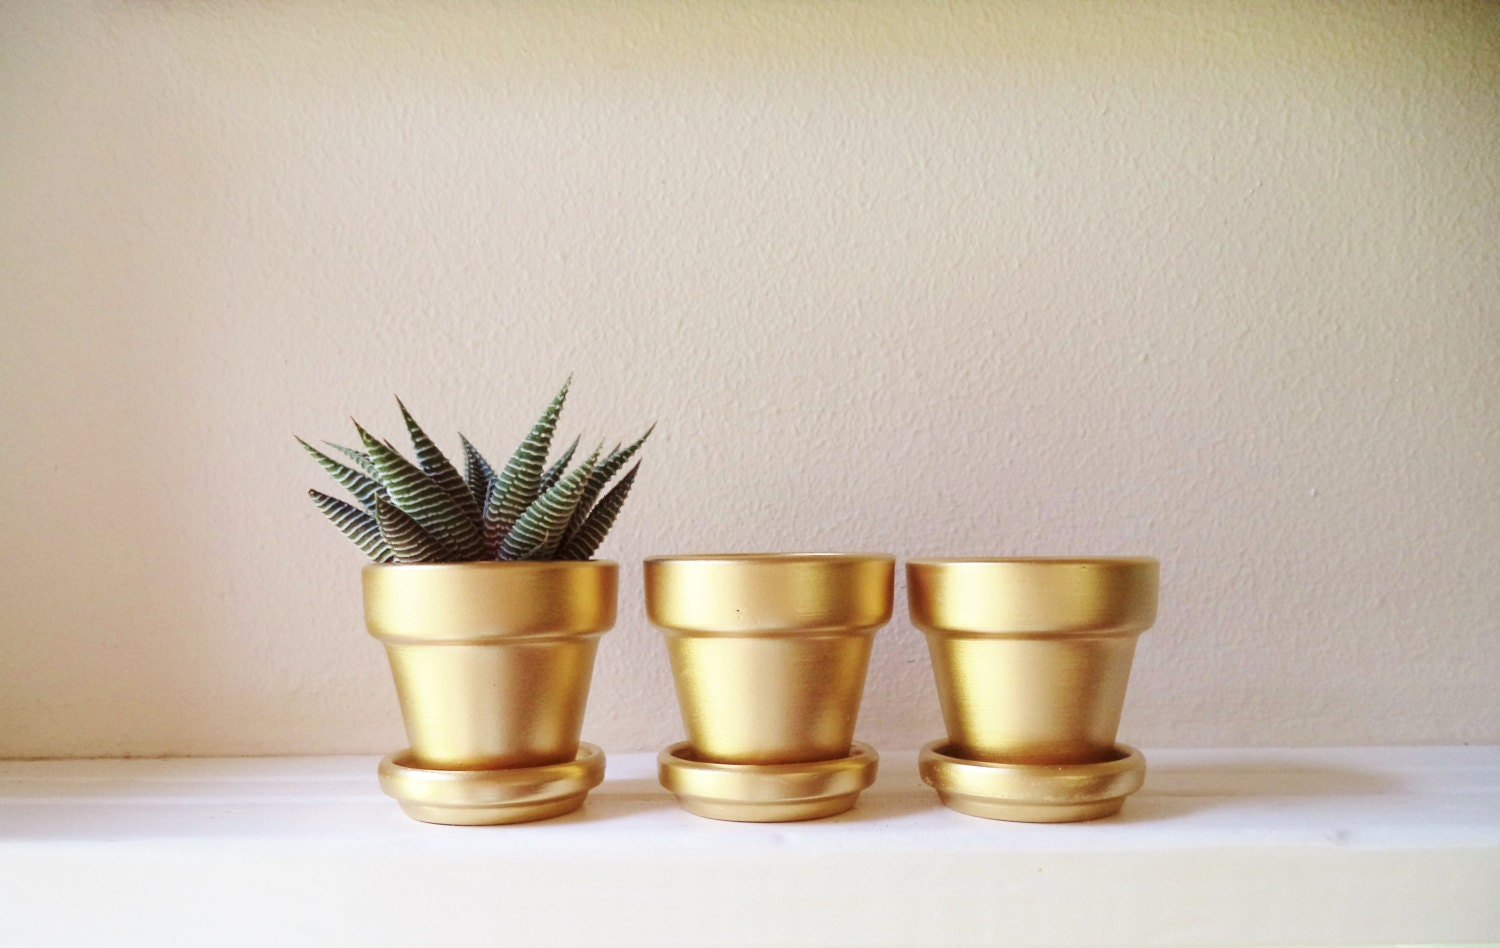 No Holiday Delivery Gold Mini Planters 2 Inch Succulent Pots